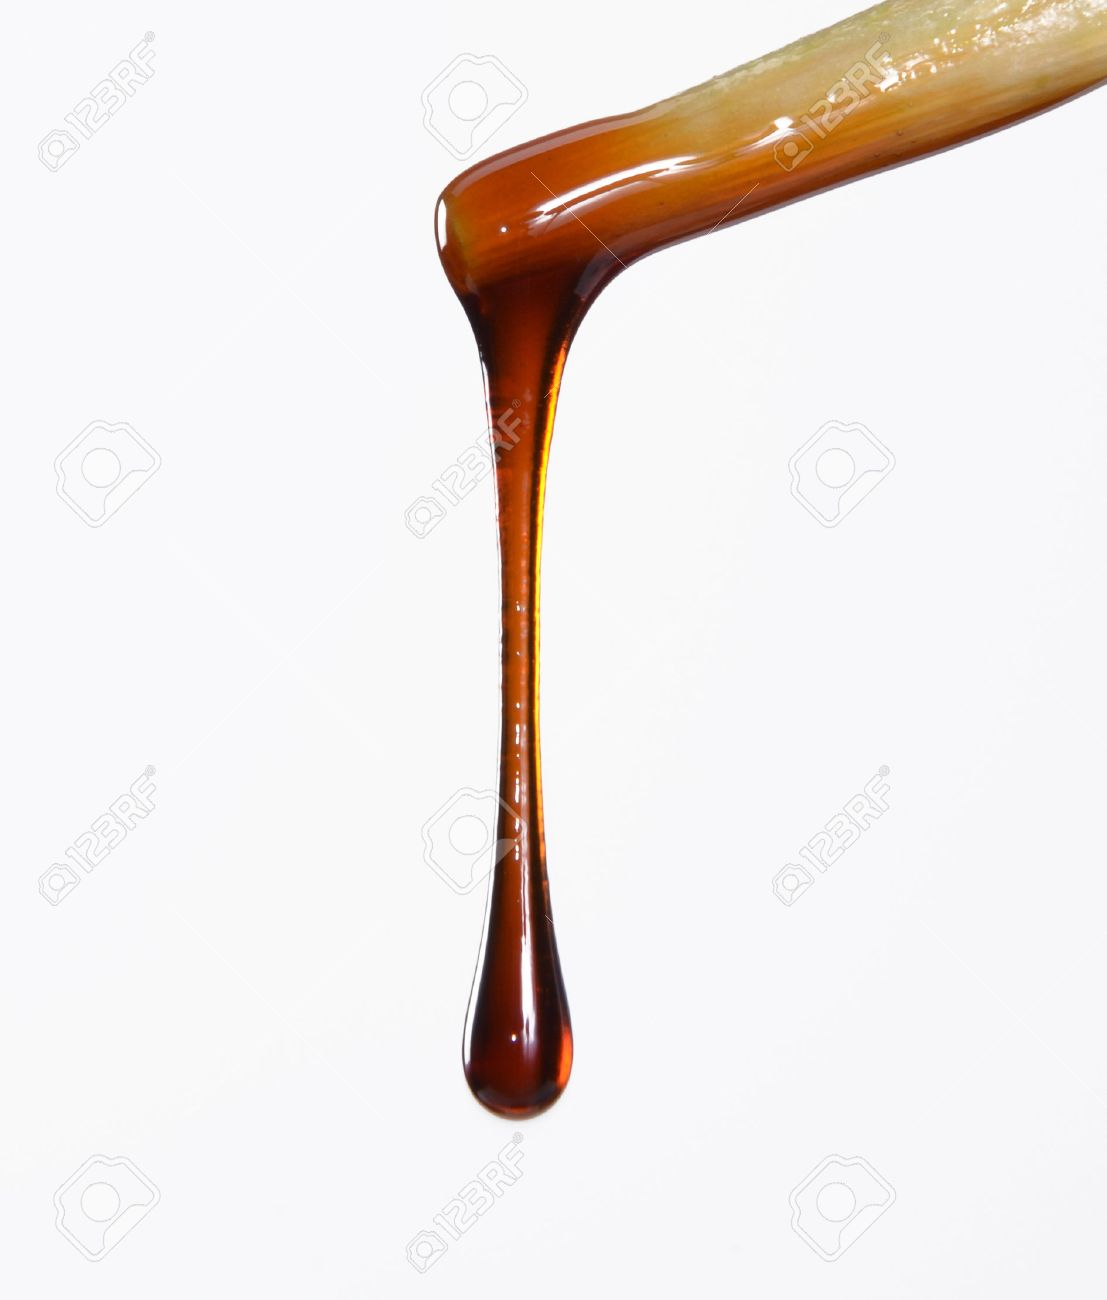 sauce dripping off a chopstick stock photo, picture and royalty free